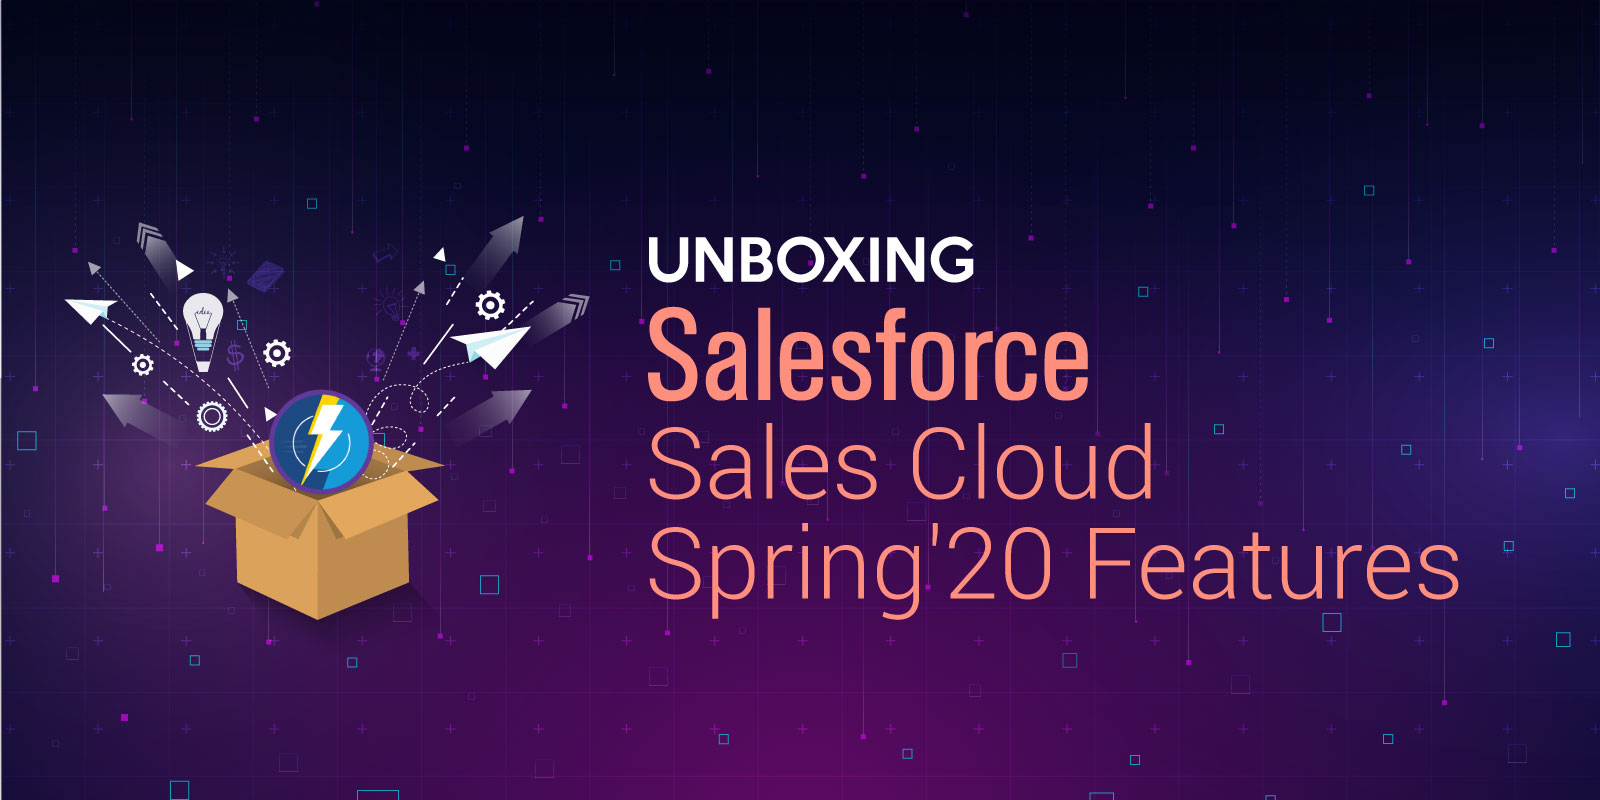 Salesforce Sales Cloud Spring '20 Features